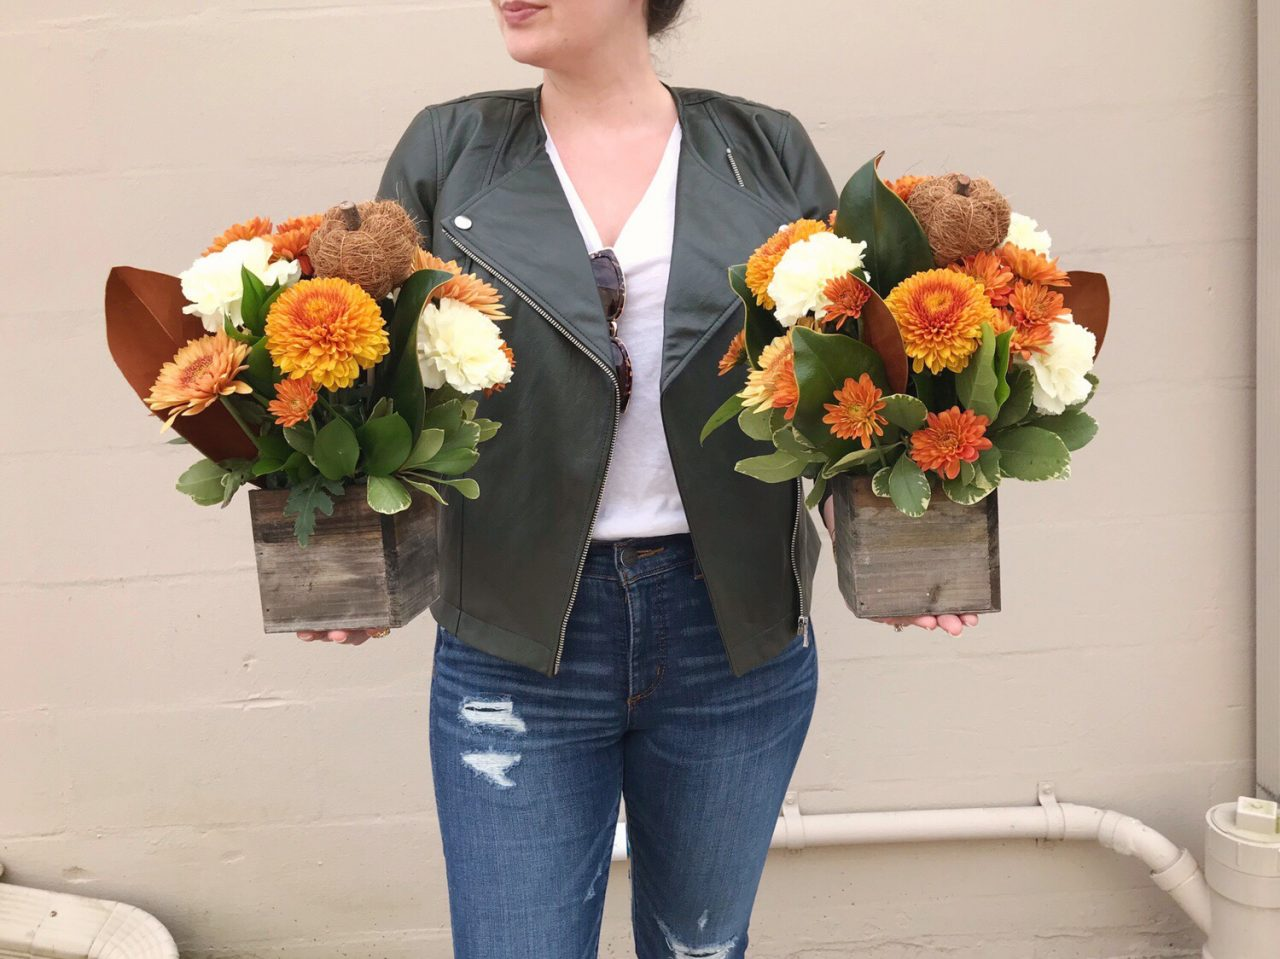 Woman wearing olive green faux leather jacket and distressed skinny jeans holding two fall floral arrangements with orange mums, cream carnations, magnolia and sisal pumpkins